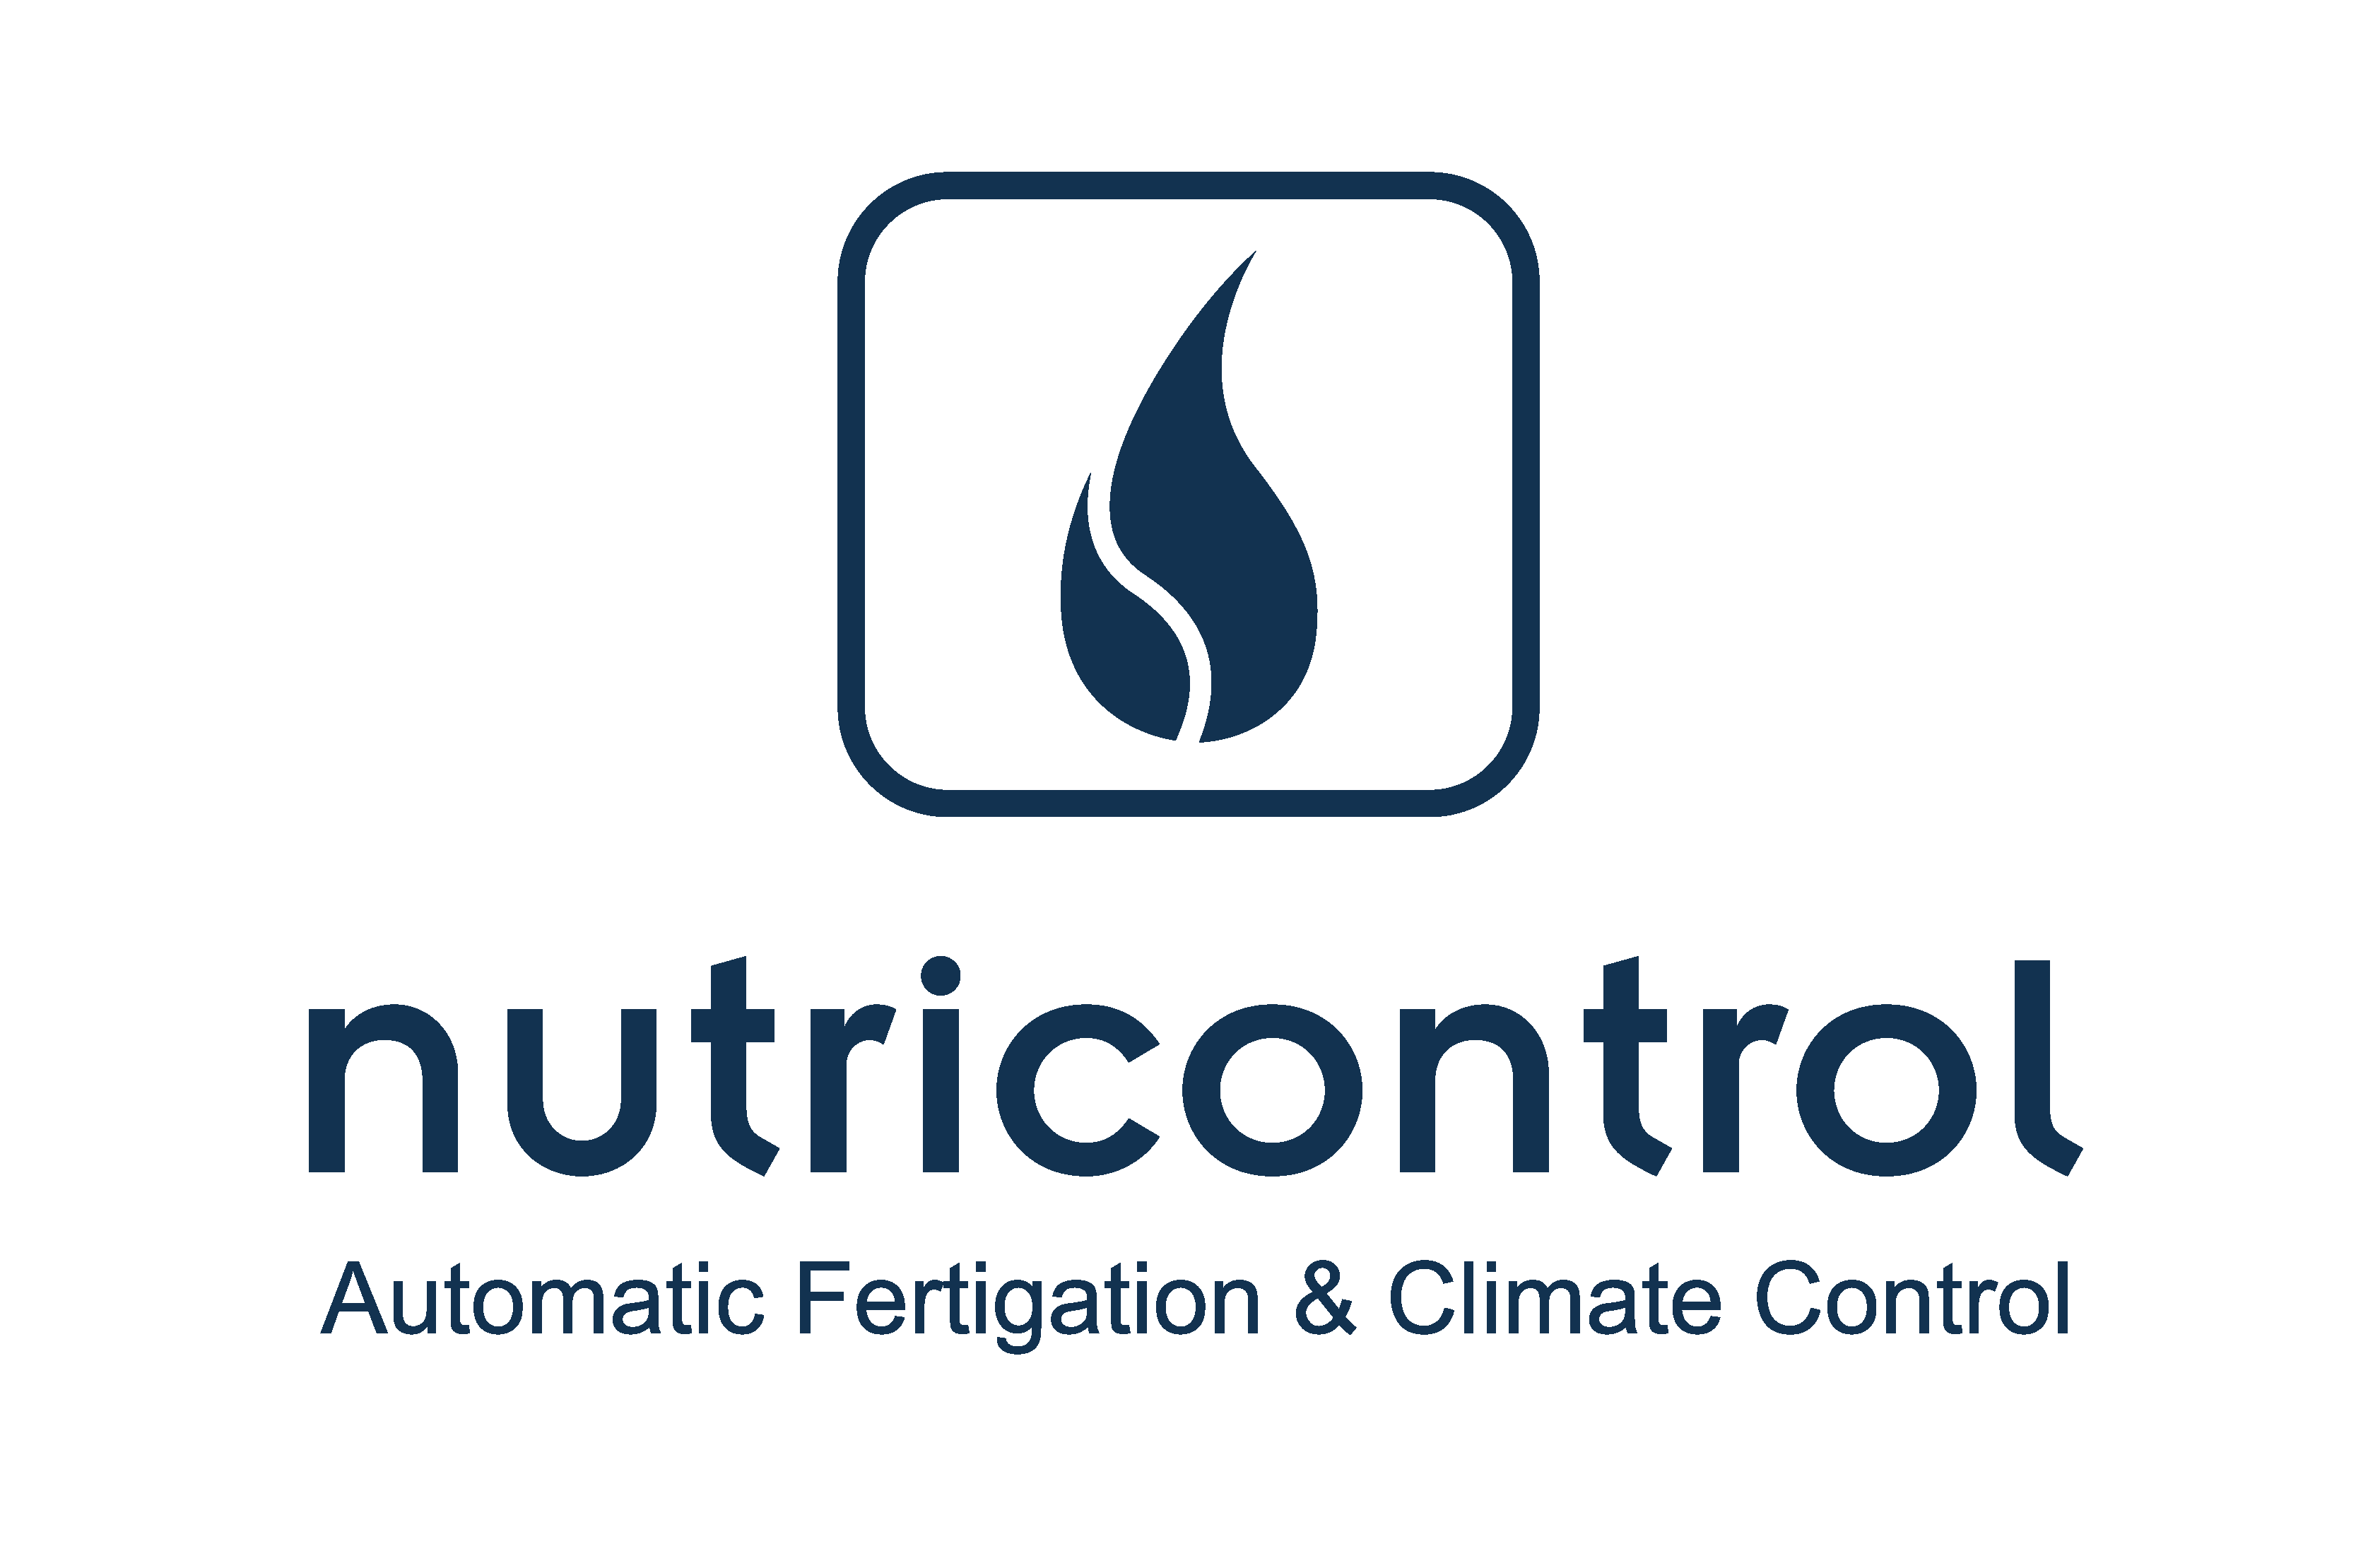 NUTRICONTROL, S.L.